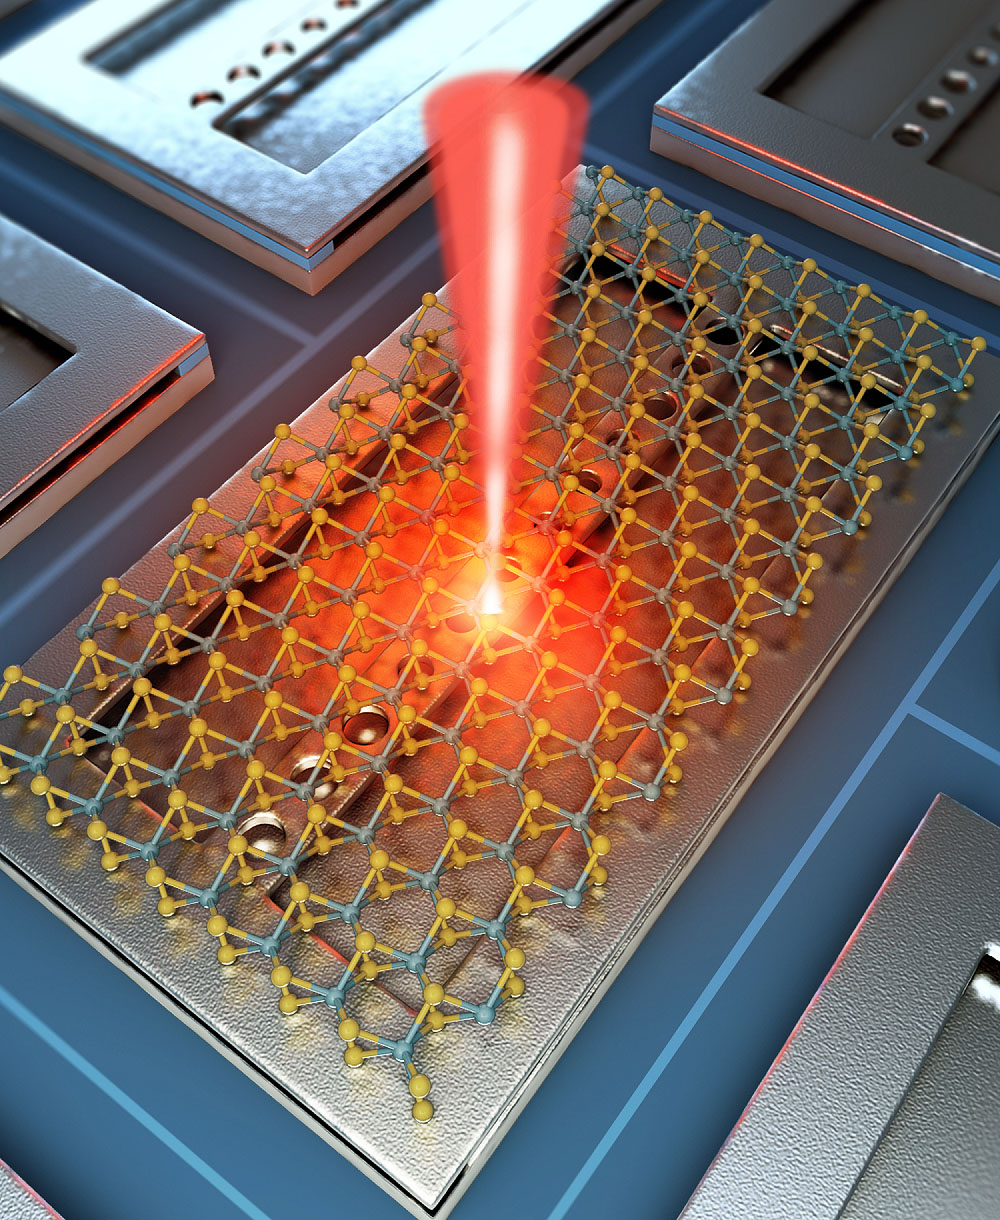 Single molecular layer and thin silicon beam enable nanolaser operation at room temperature